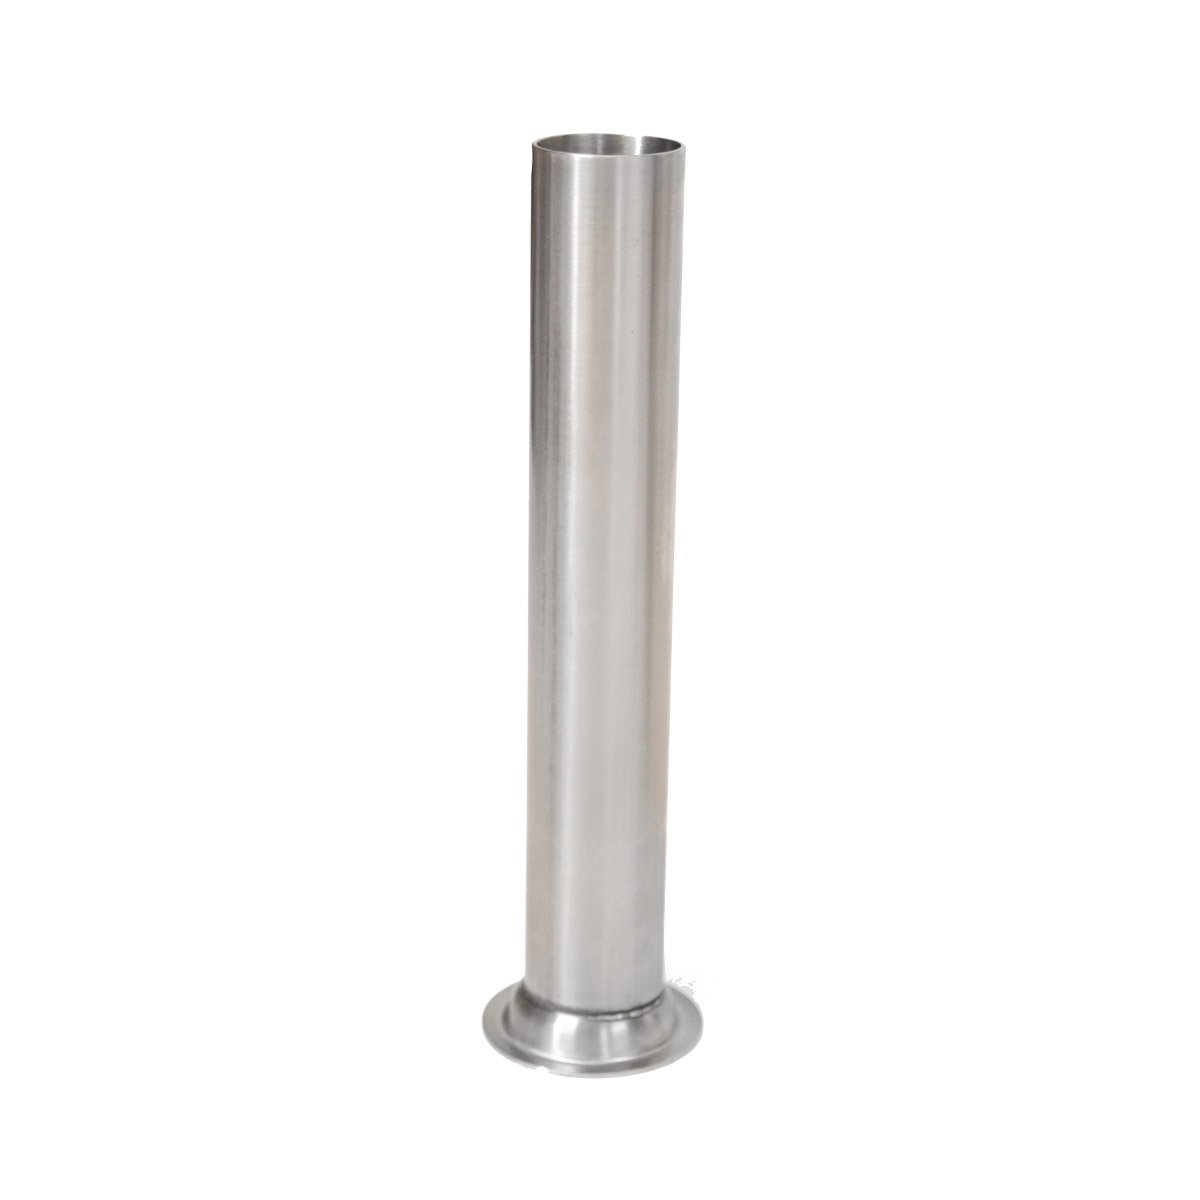 The Sausage Maker 1 1/4'' Diameter Stainless Steel Stuffing Tube for 15, 20, 25, 30 lb Sausage Stuffer